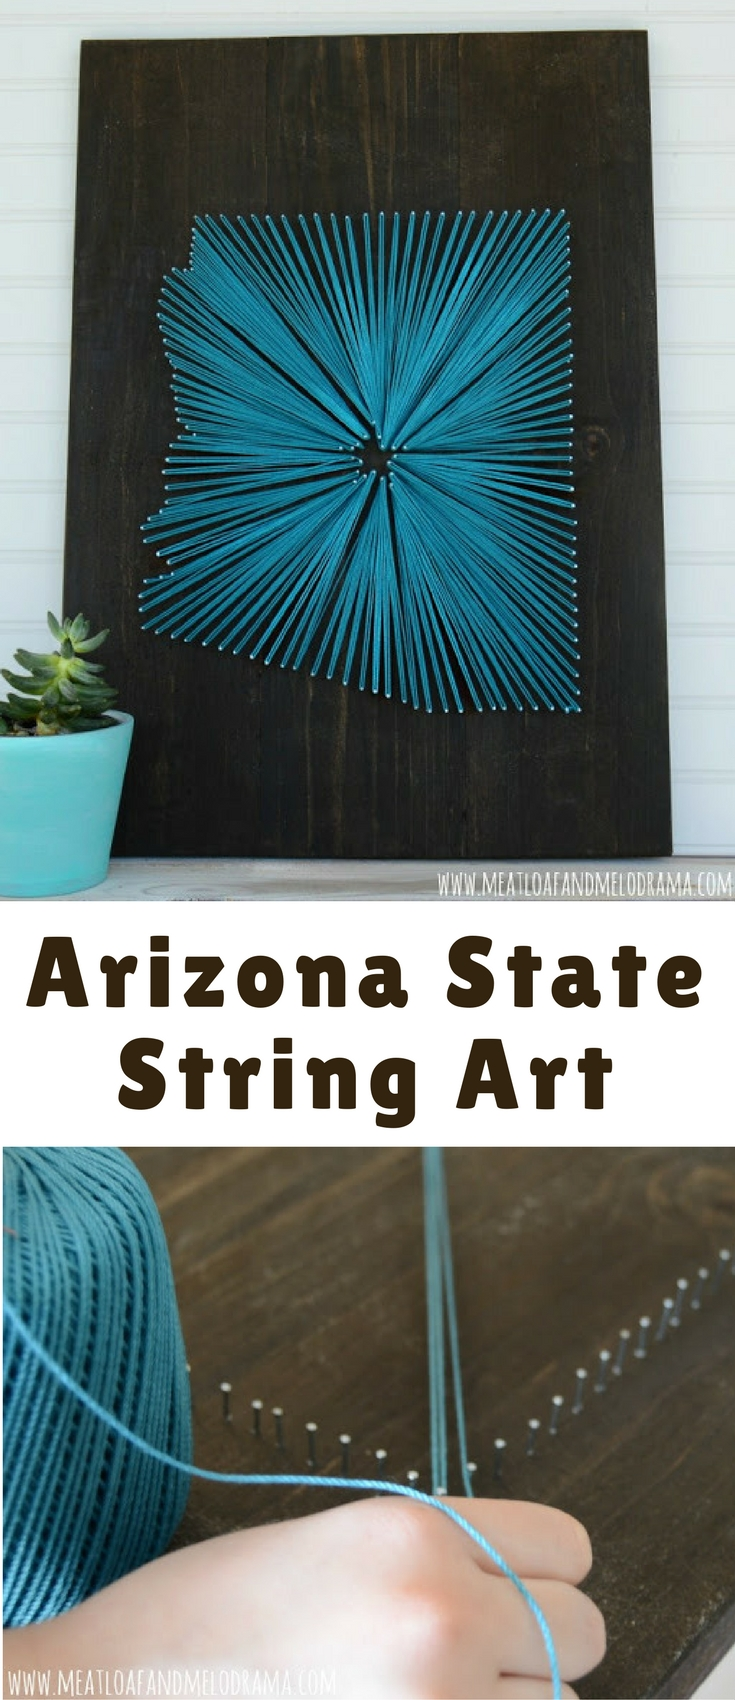 Hi friends! Do you like string art projects? I know it's been popular for a while now, but I just decided to try it out in our home. I decided to make some Arizona state string art, and I love how it turned out!